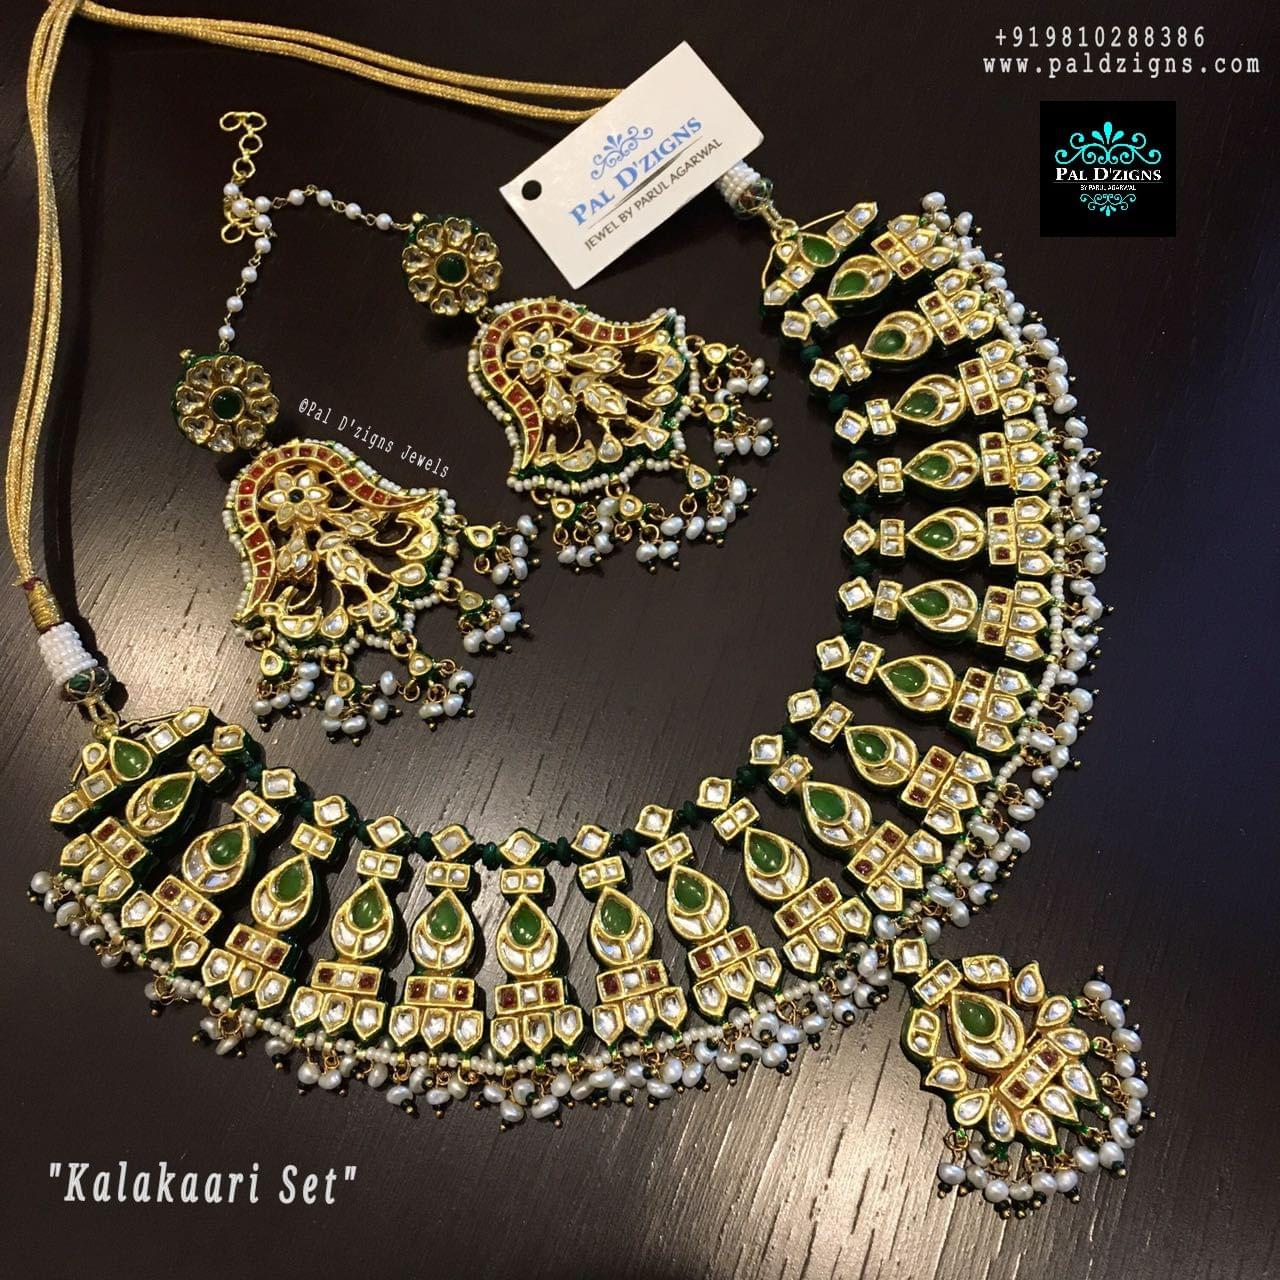 Kalakaari Necklace set